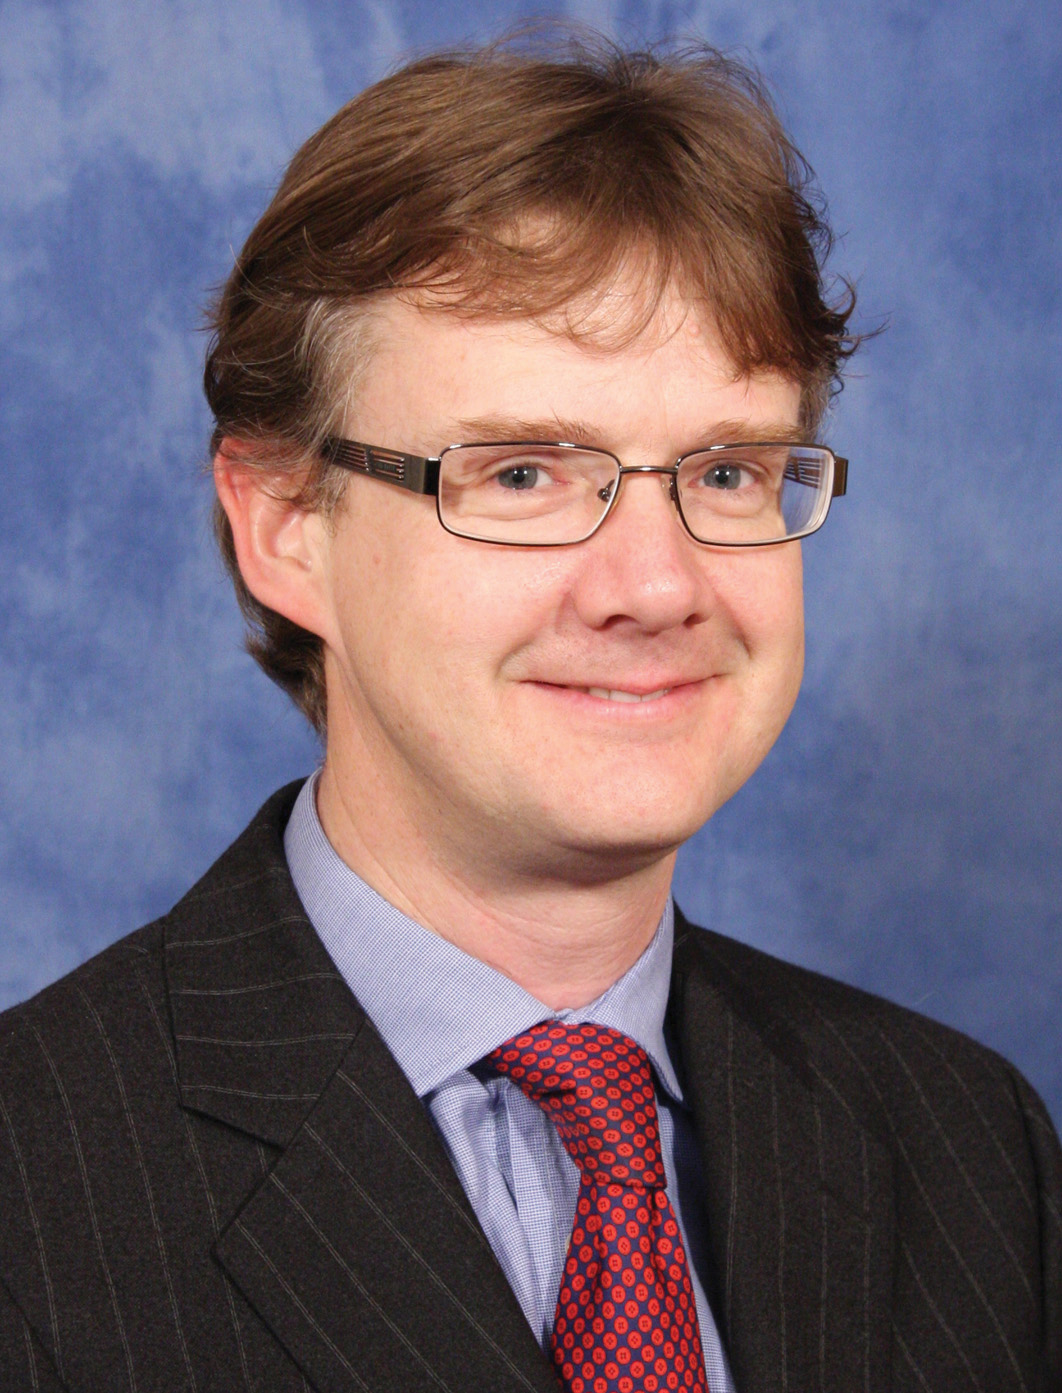 Andrew Smith, Head of Estates and Sustainable Development, HEFCE. Martin Wiles ... - andrewsmith